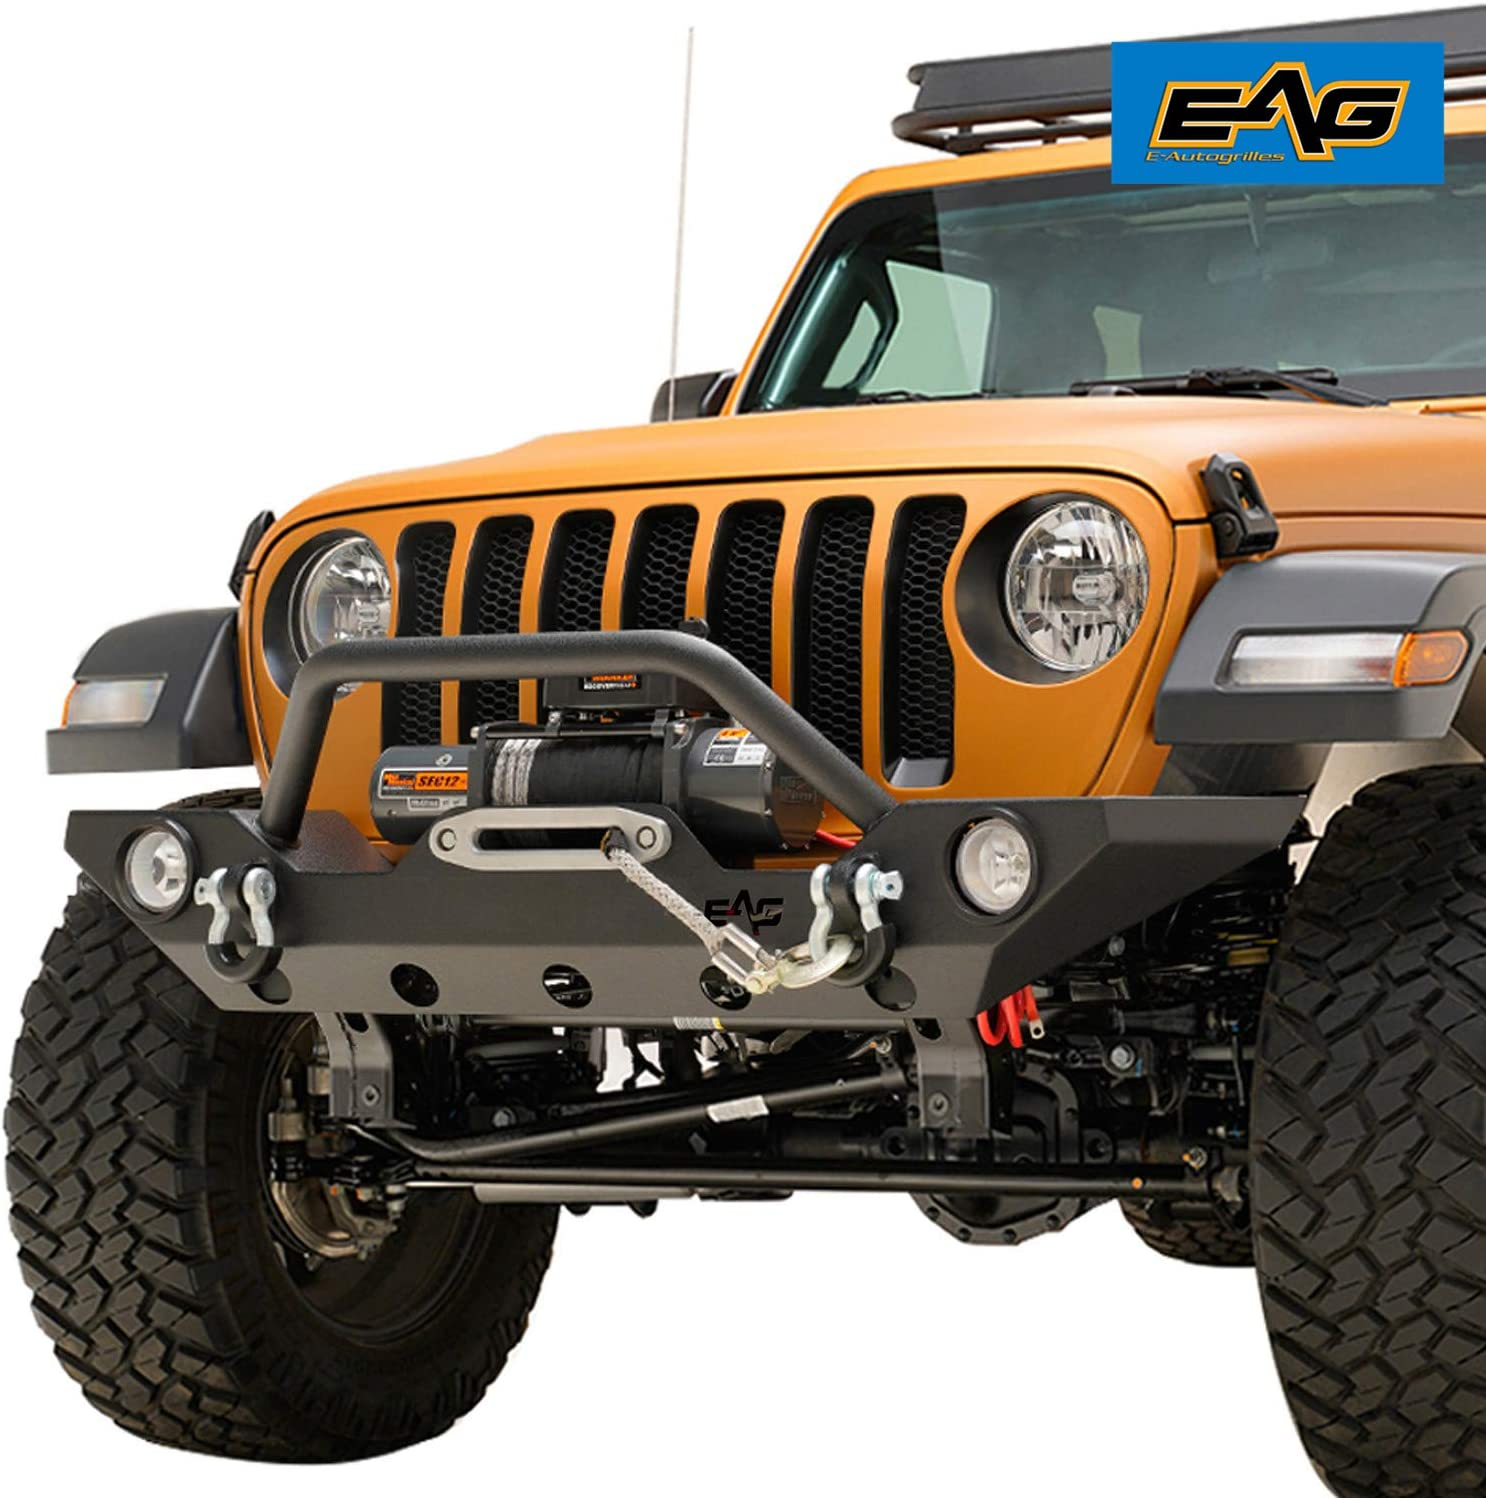 EAG Front 40%OFFの激安セール Bumper Rock Crawler with Winch and P Housing マーケット Fog Light